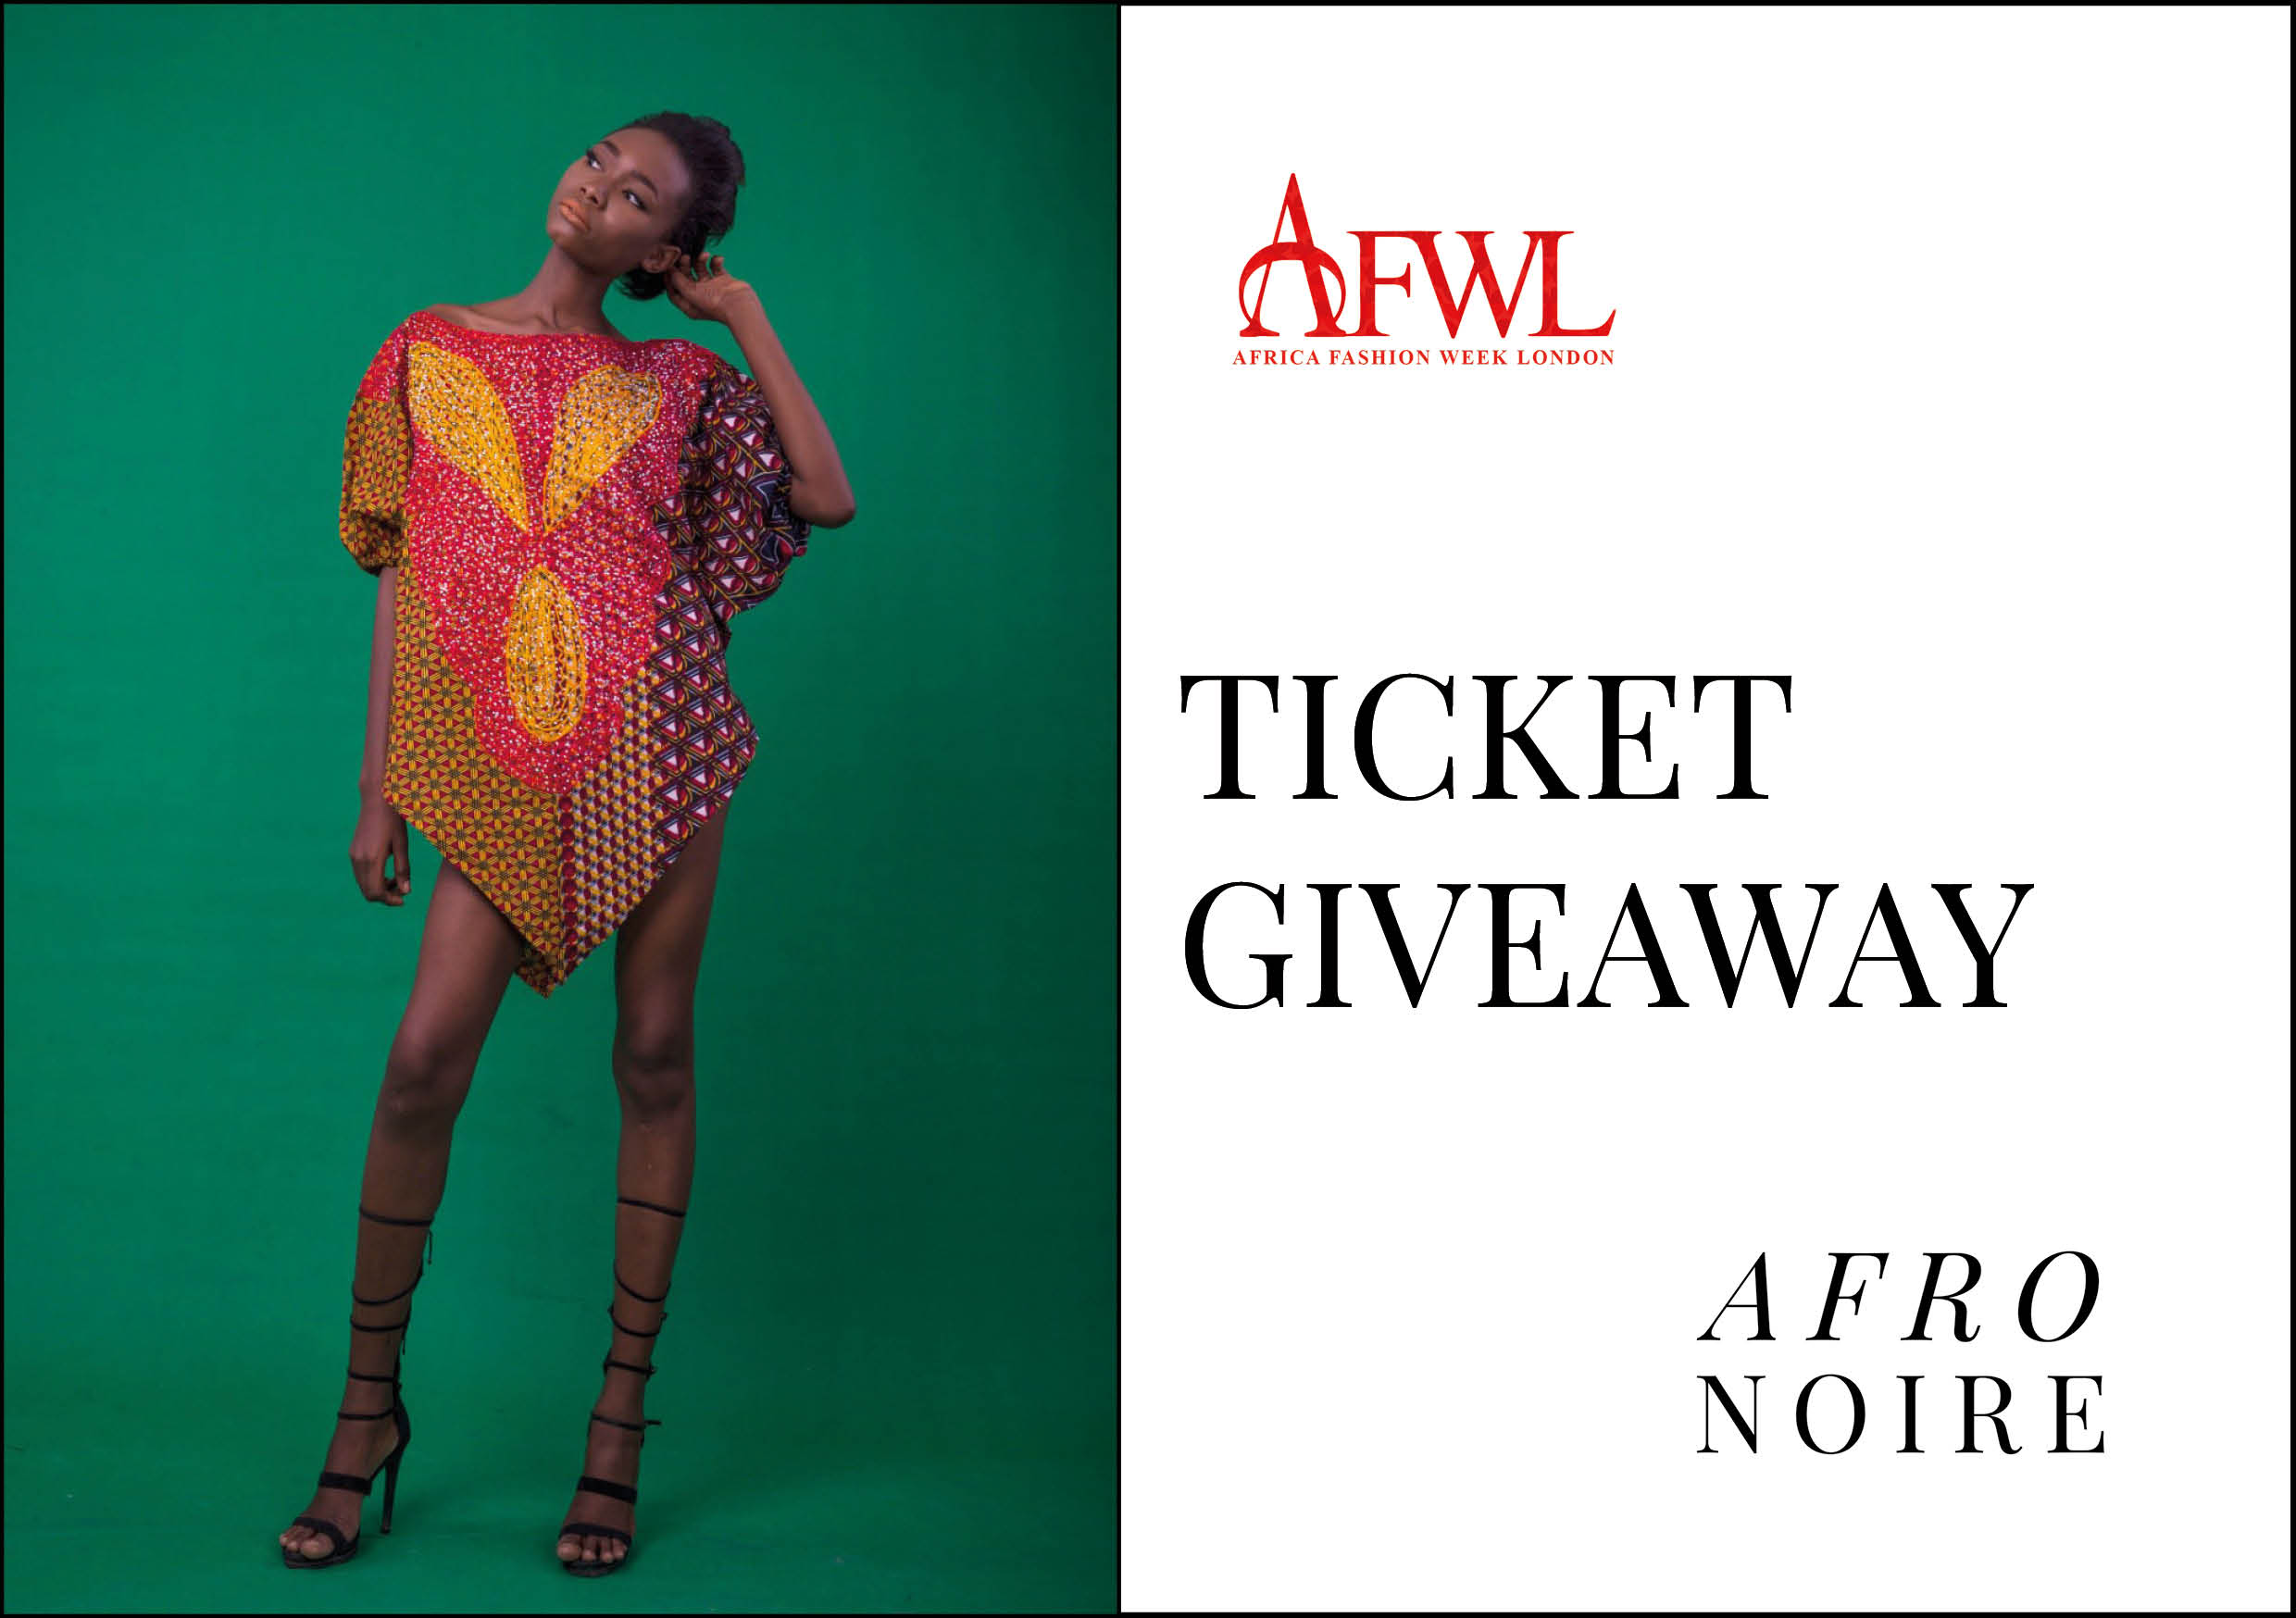 Ticket Giveaway For Africa Fashion Week London 2017 Afronoire